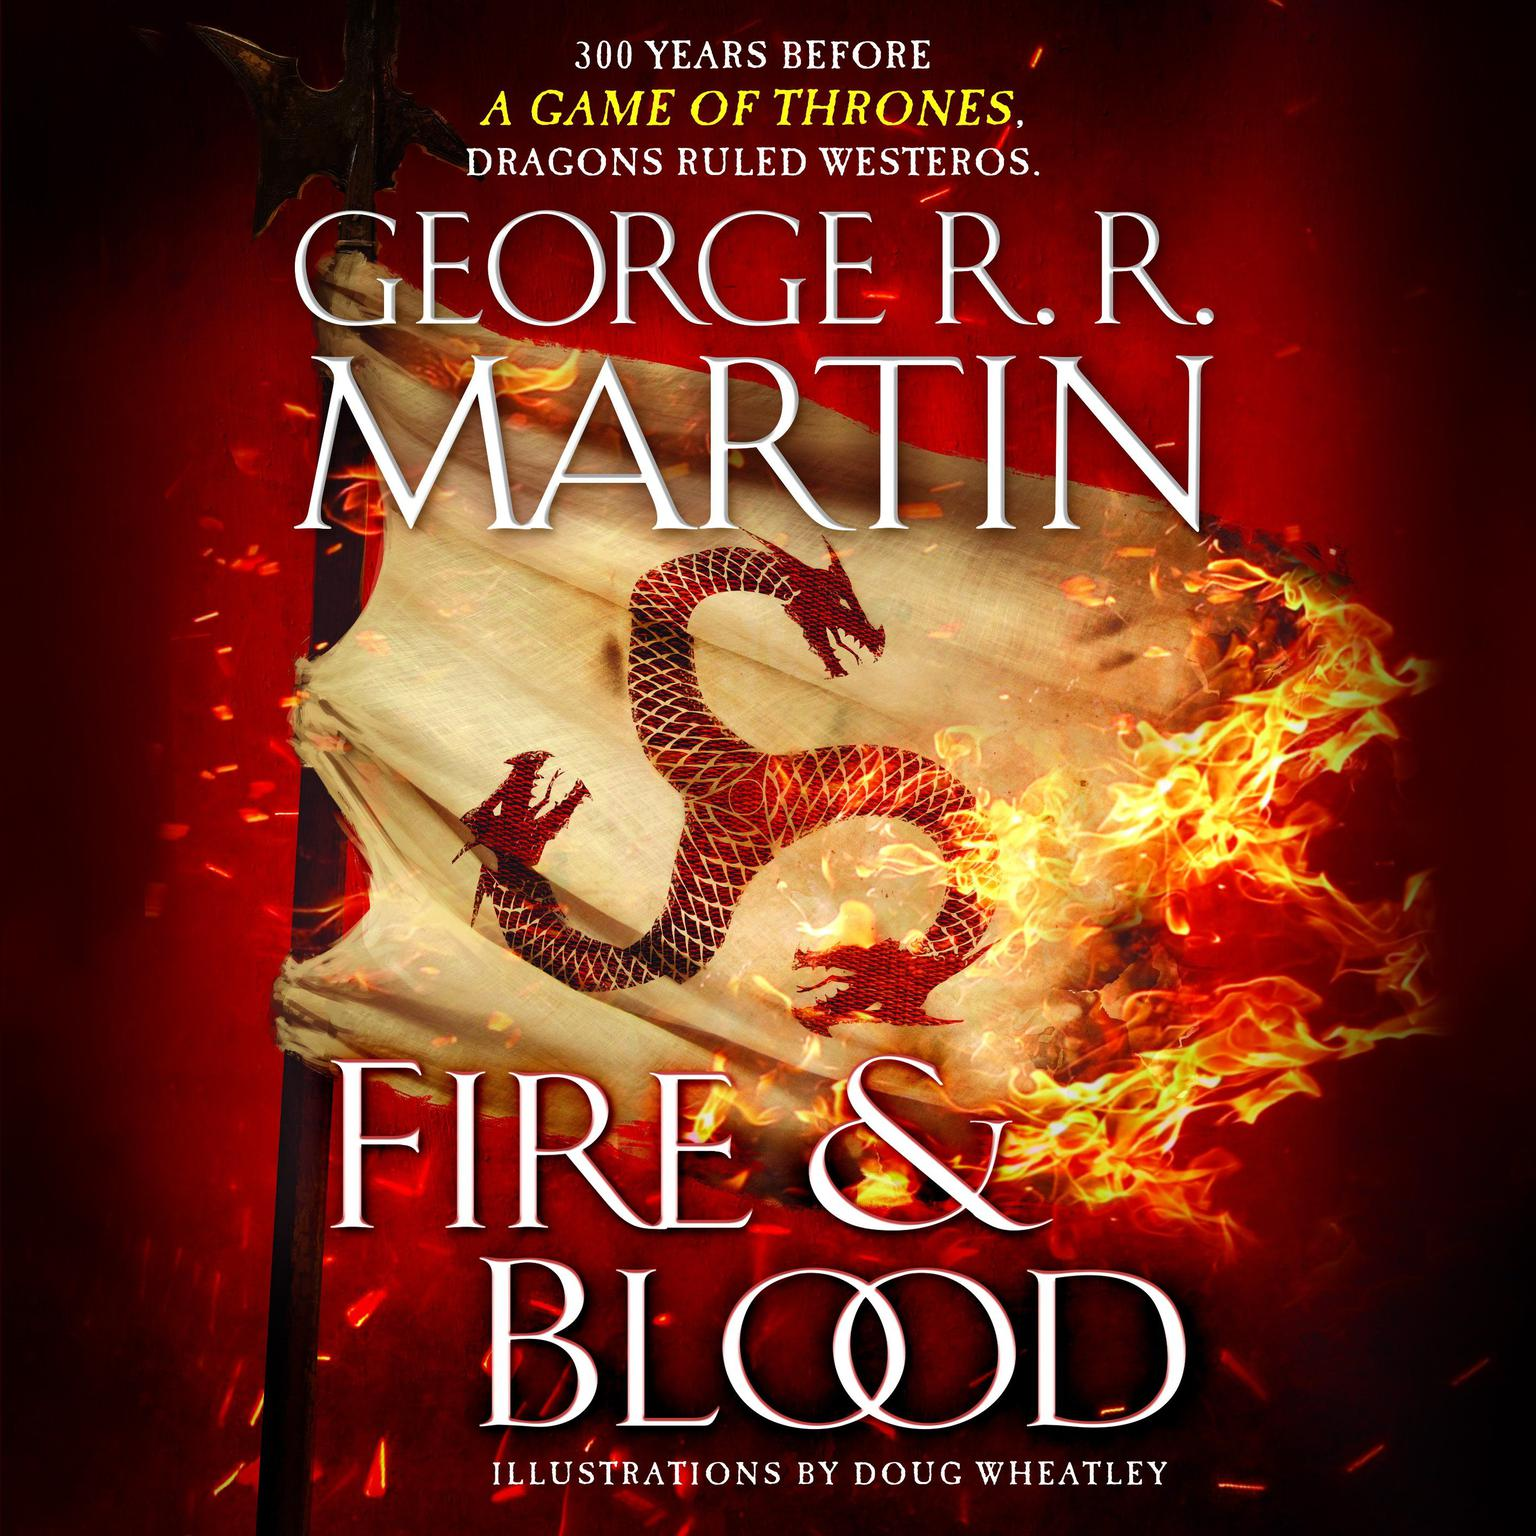 Fire & Blood: 300 Years Before A Game of Thrones (A Targaryen History) Audiobook, by George R. R. Martin